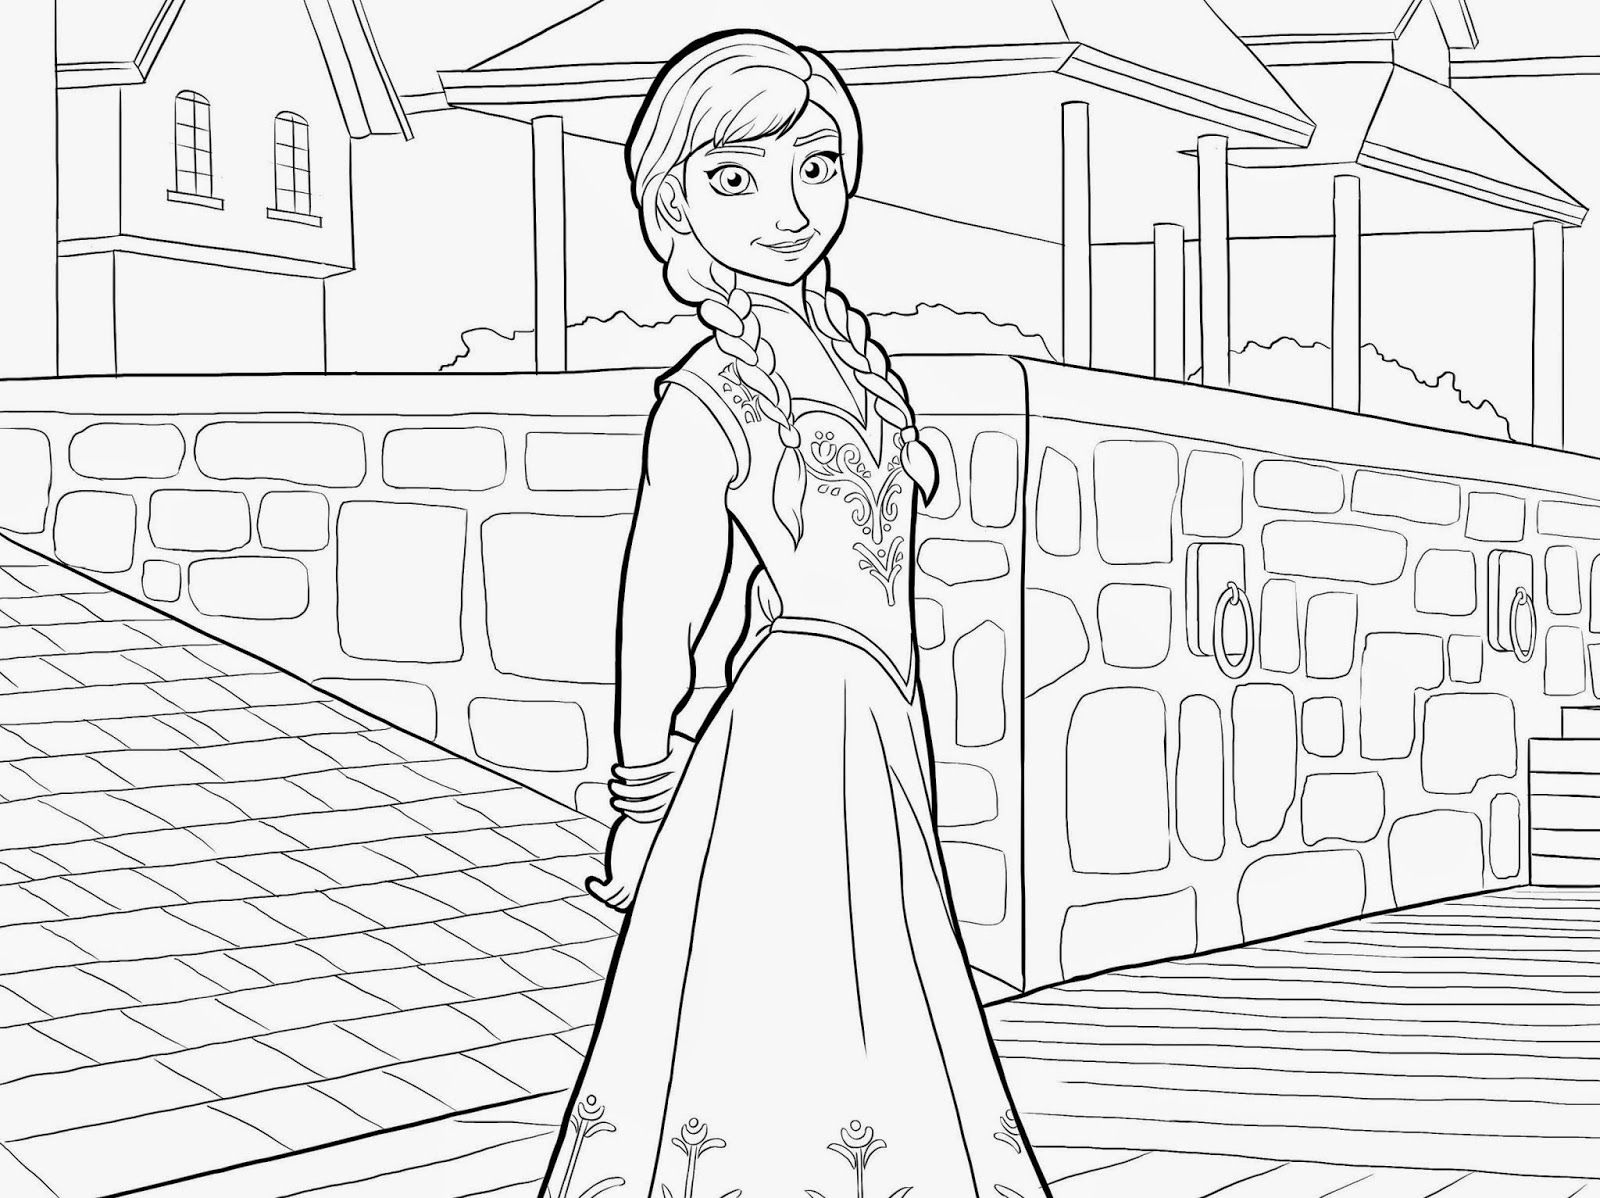 frozen elsa anna coloring pages frozen elsa anna coloring pages frozen inspired by the story of the snow queen adapted free took the story of two - Frozen Elsa And Anna Coloring Pages